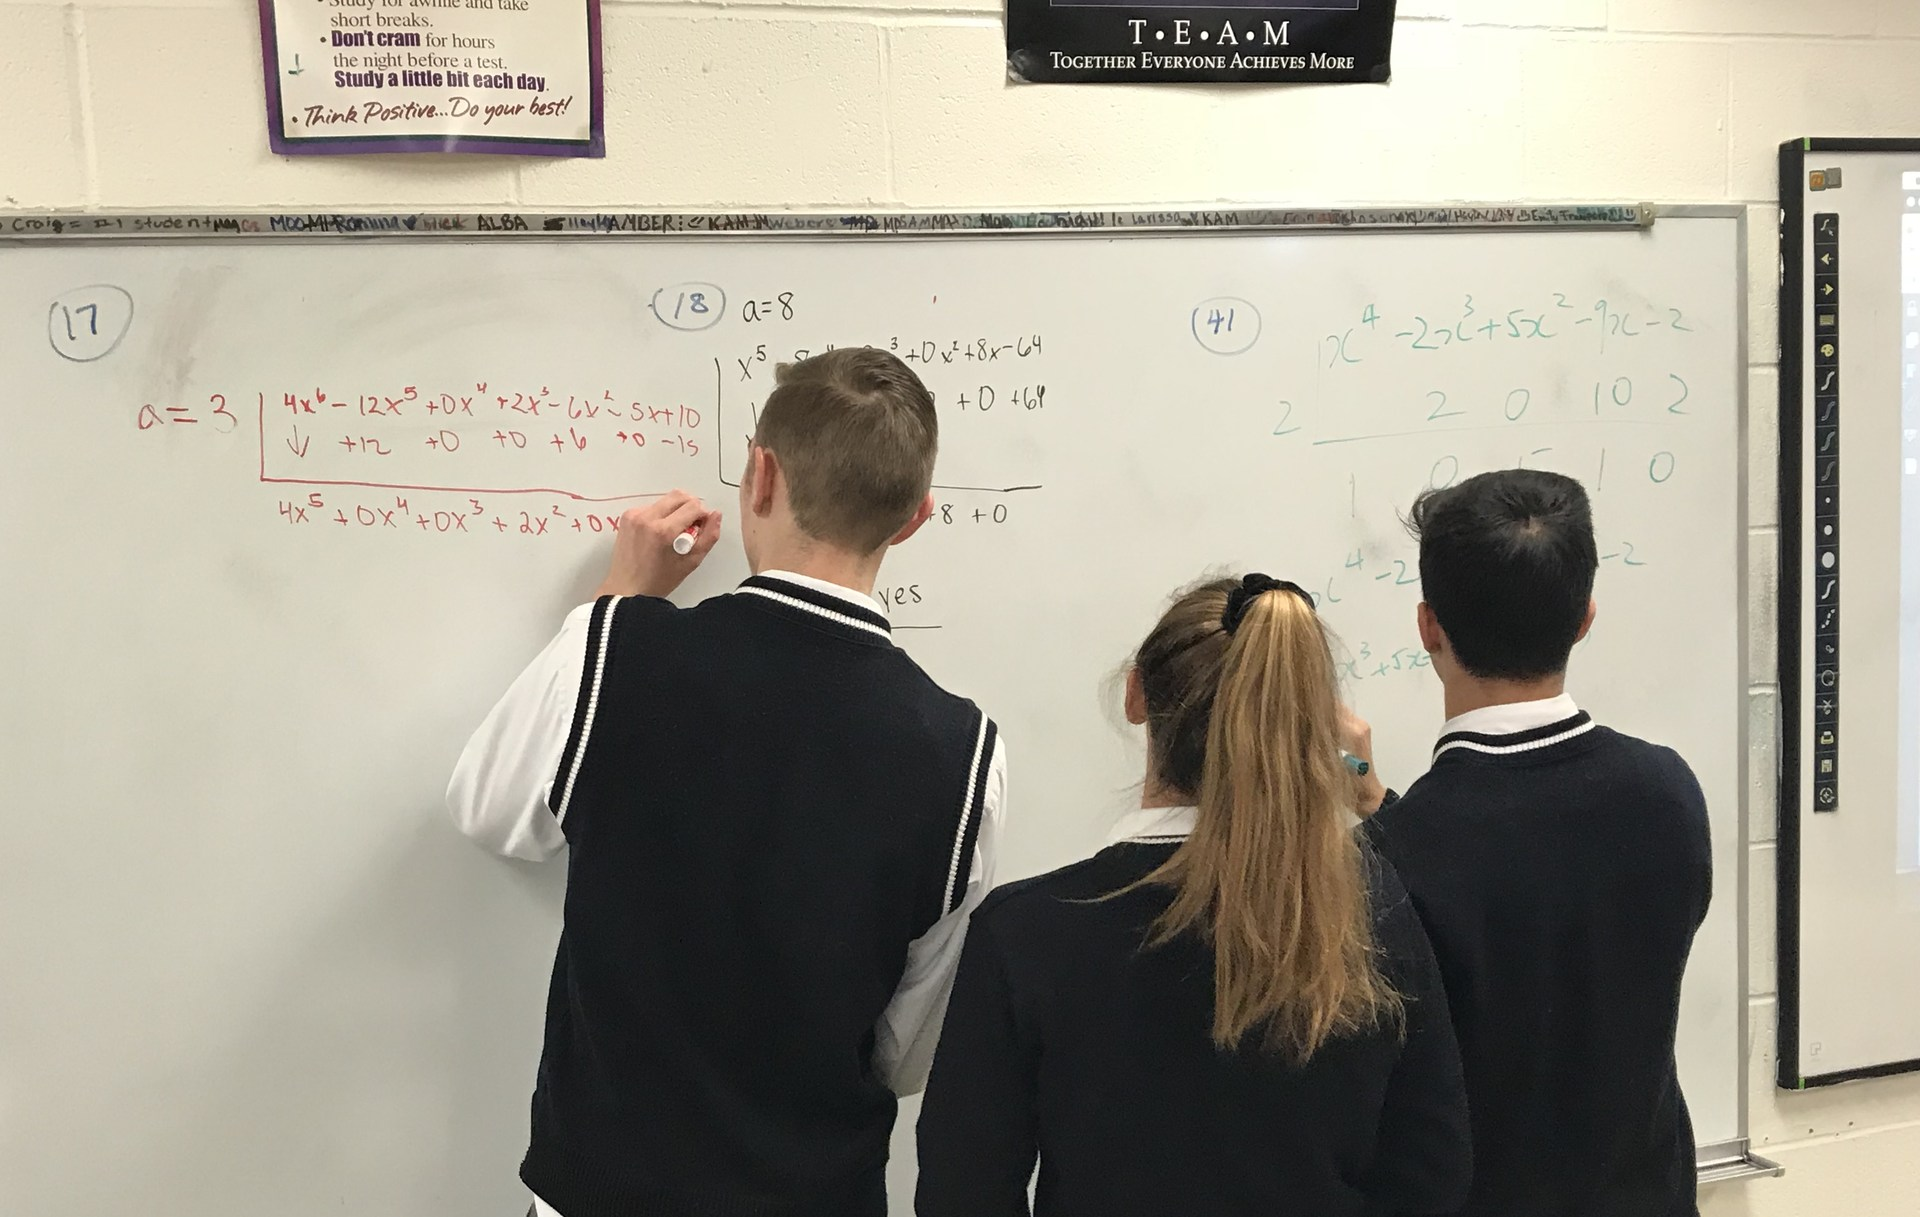 Students writing math problems on board